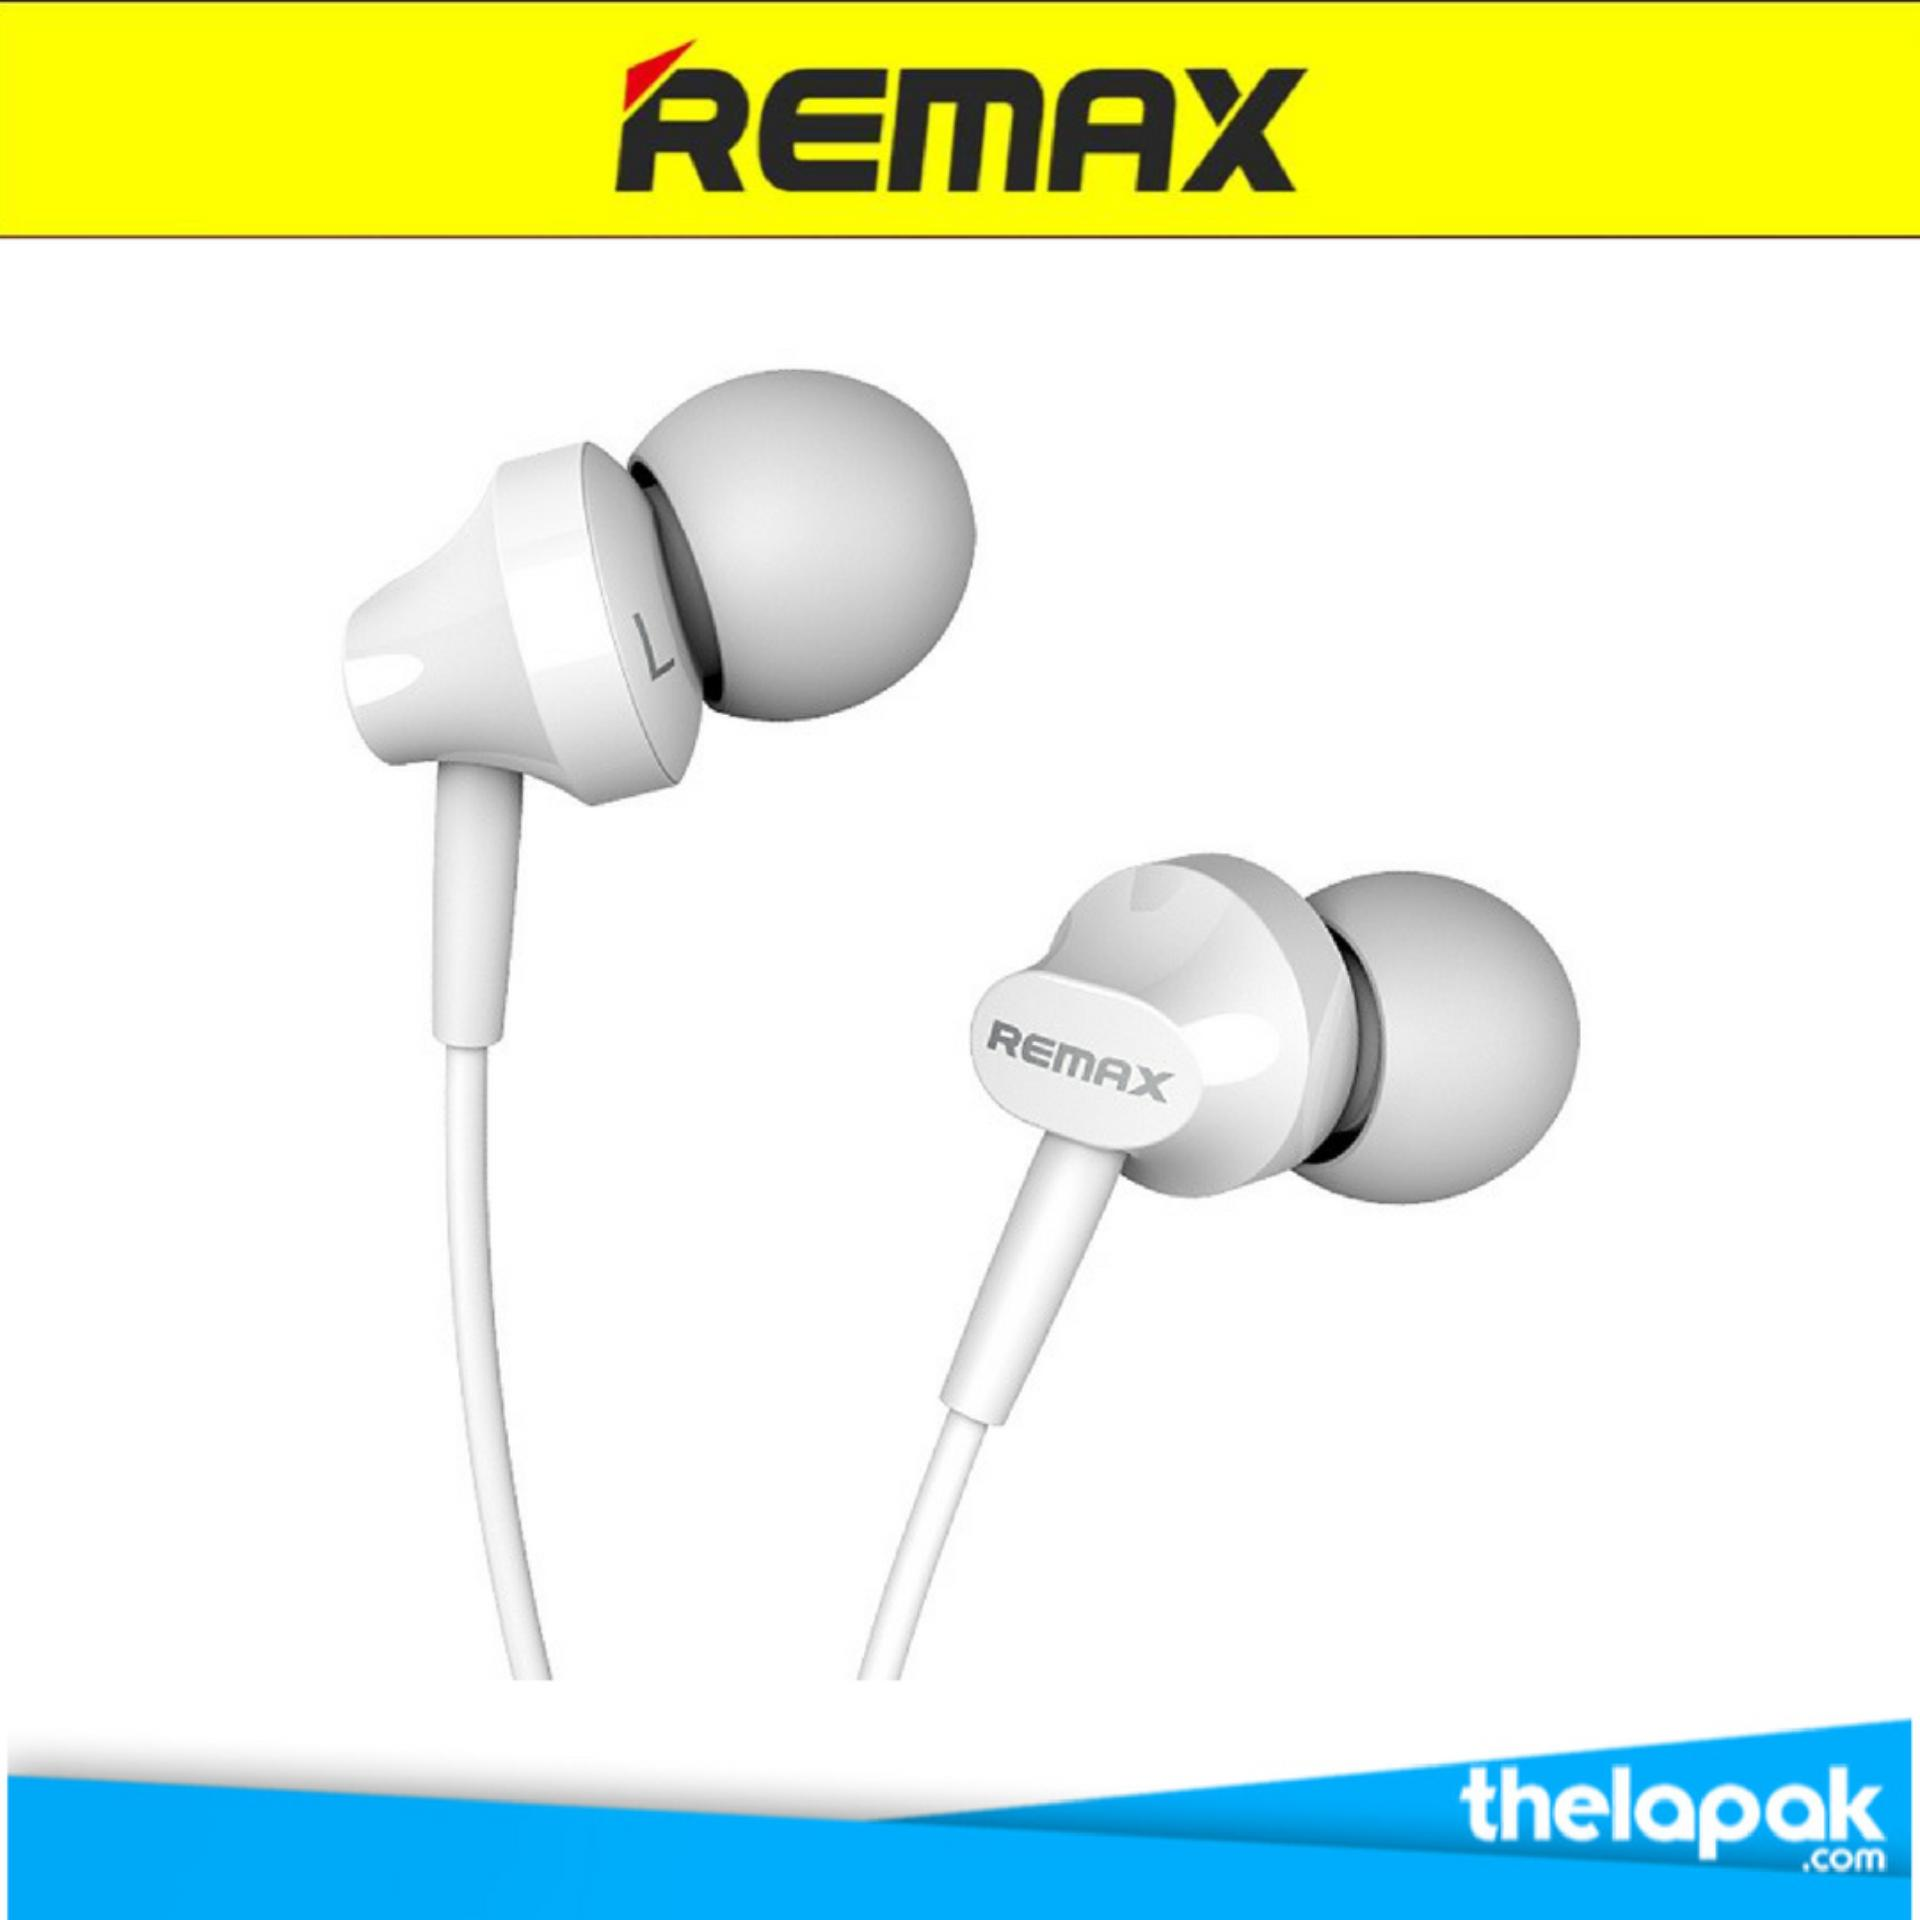 Harga Remax Earphone Headset Rm501 For Iphone Android Putih Murah